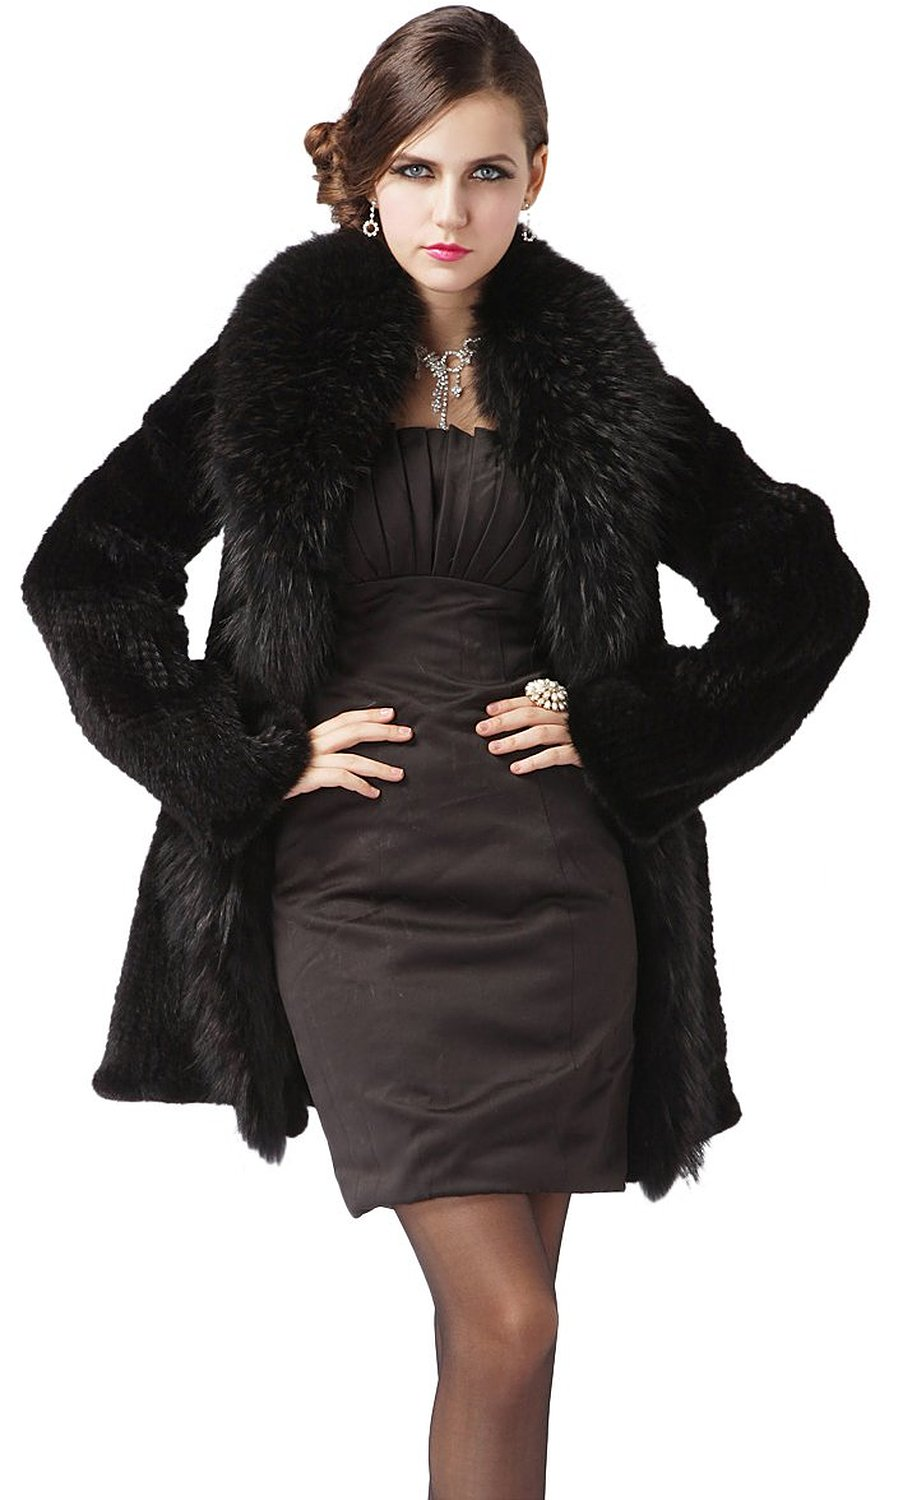 Queenshiny 100% Real Genuine Mink Fur Knitted Coat Jacket With Super Raccoon Collar